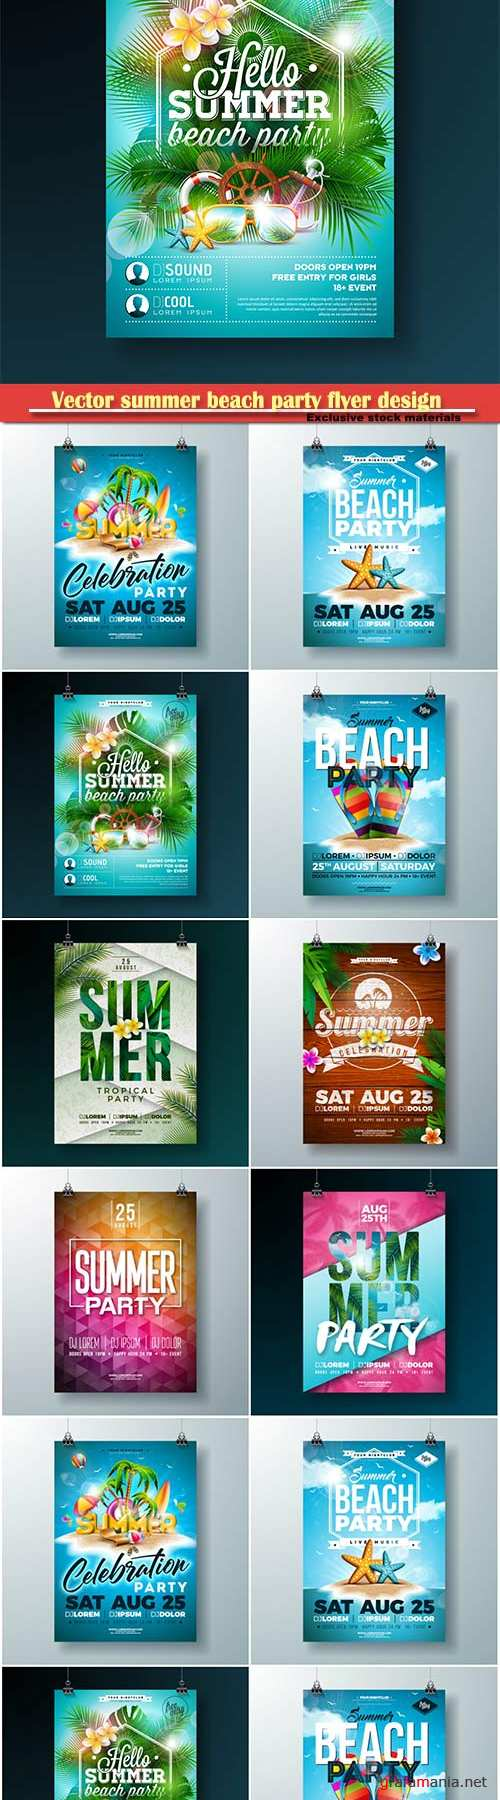 Vector summer beach party flyer design # 2